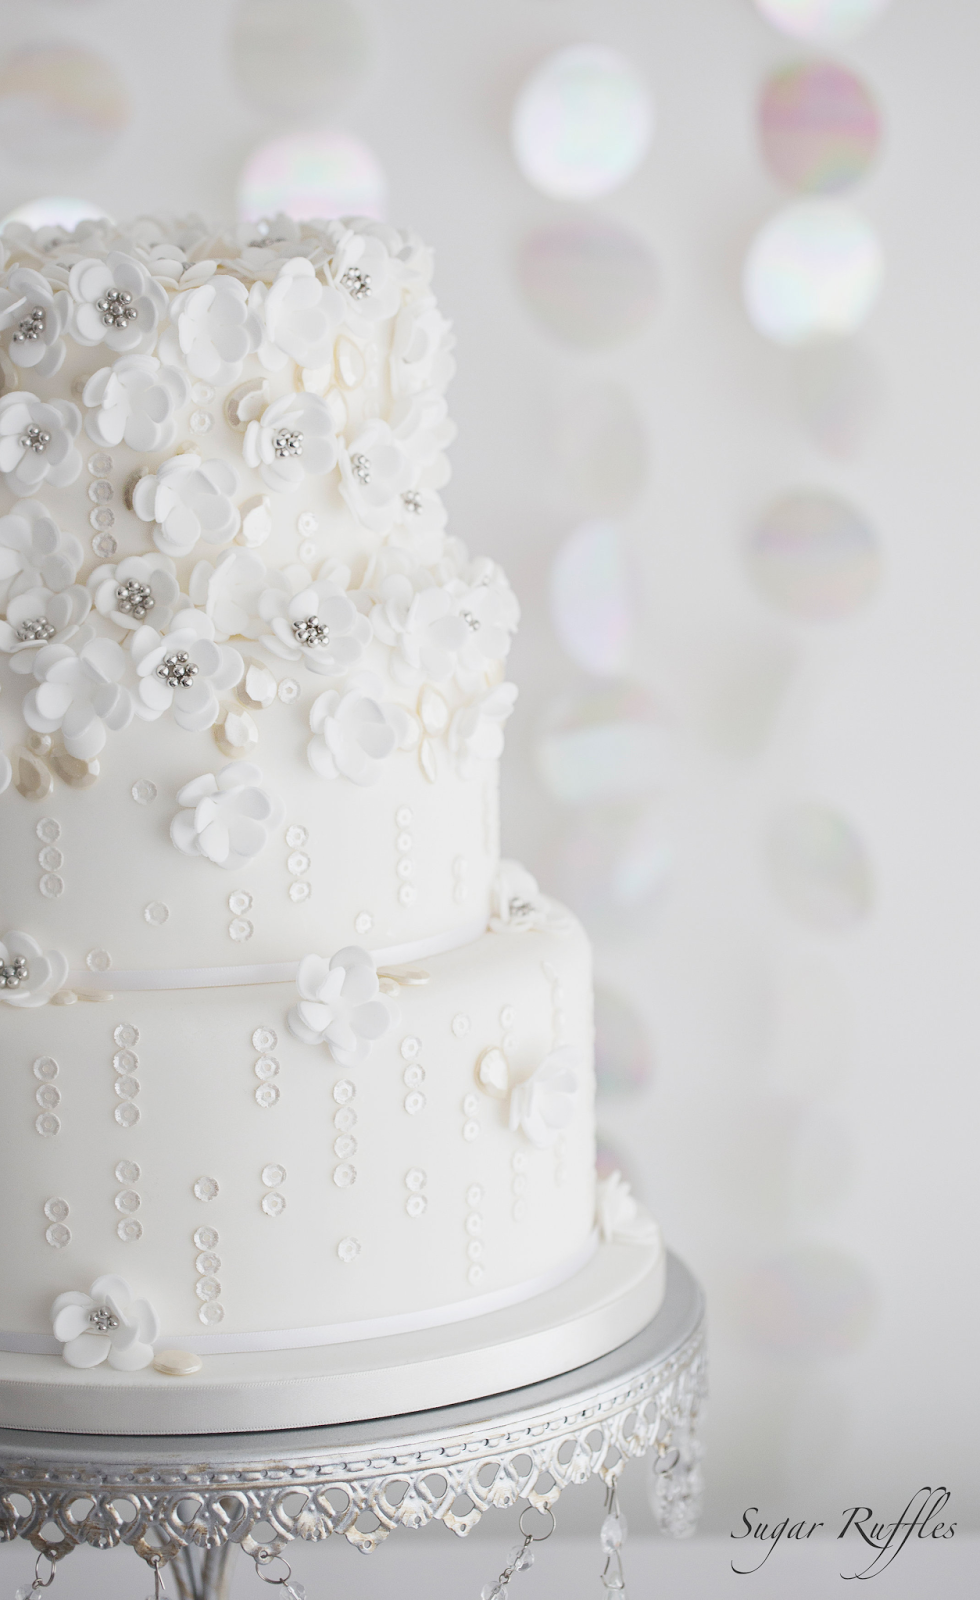 Wedding Cakes & Sugar Flowers-The fashion inspiration issue